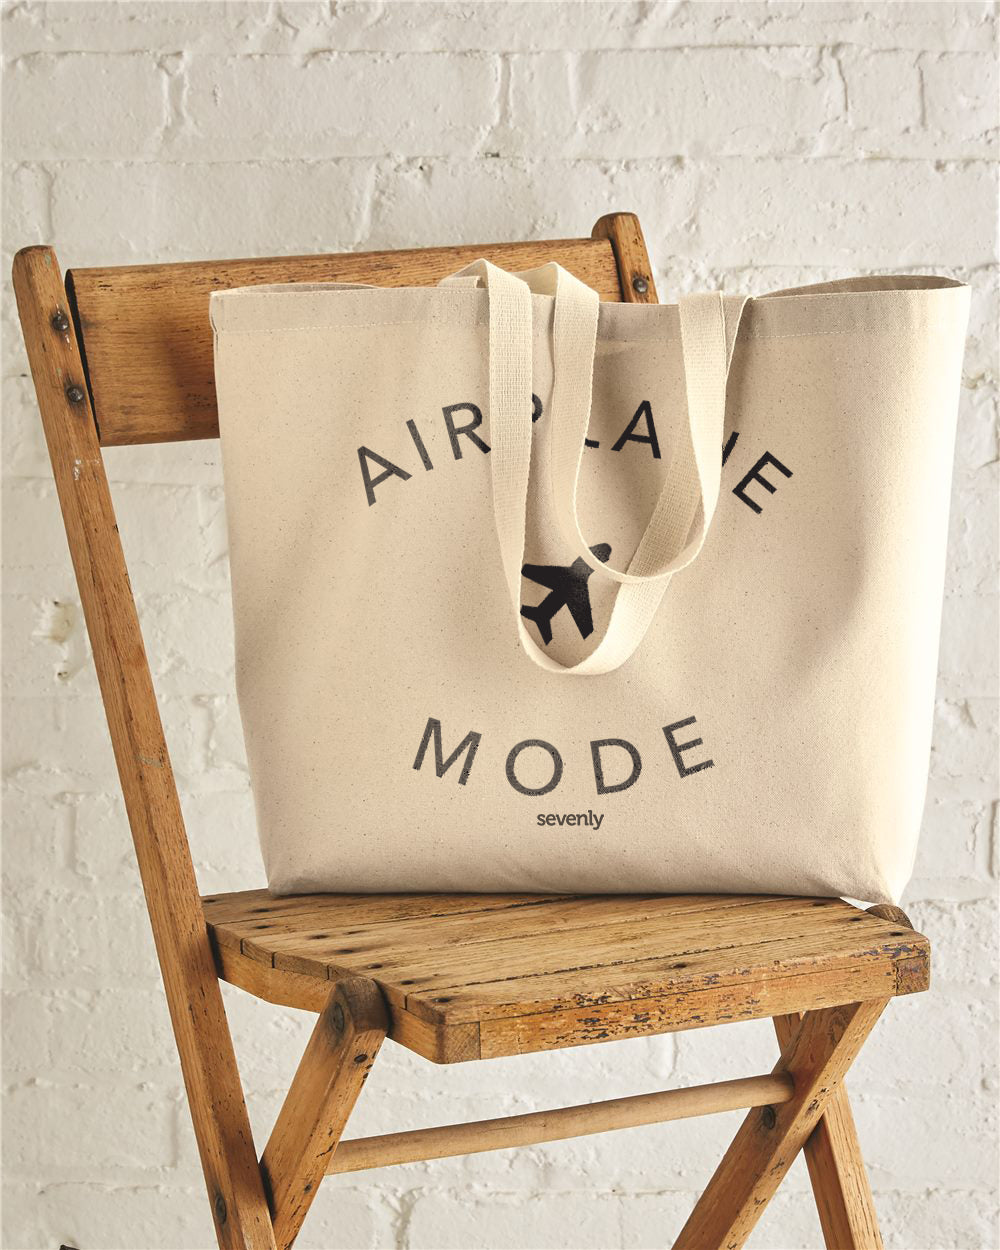 Airplane Mode Jumbo Cotton Canvas Tote Bag